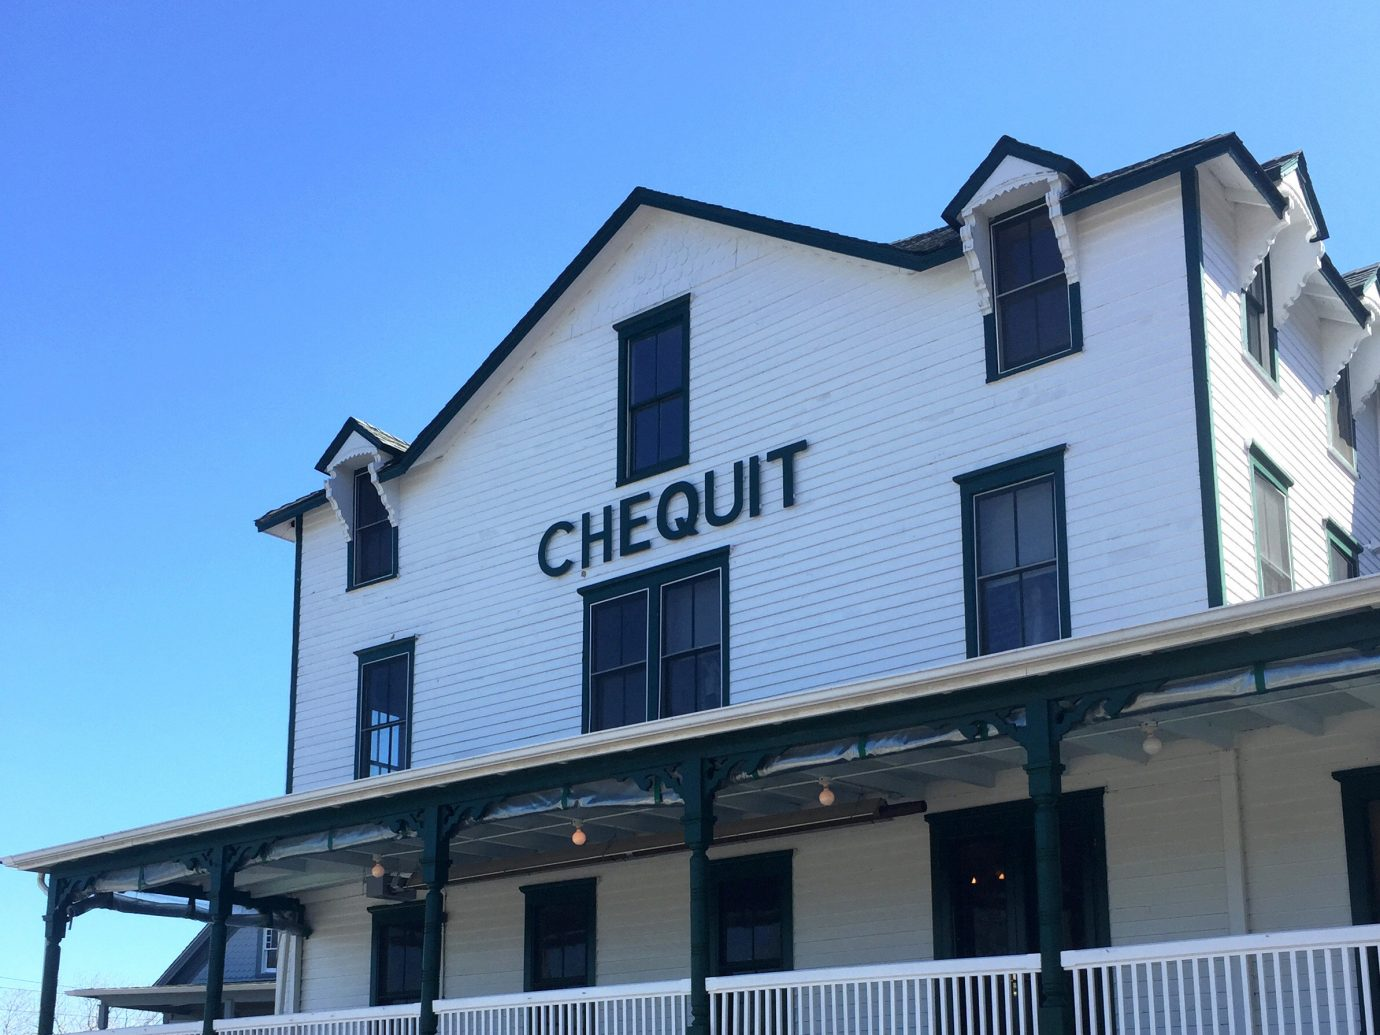 Exterior of The Chequit, Shelter Island, NY